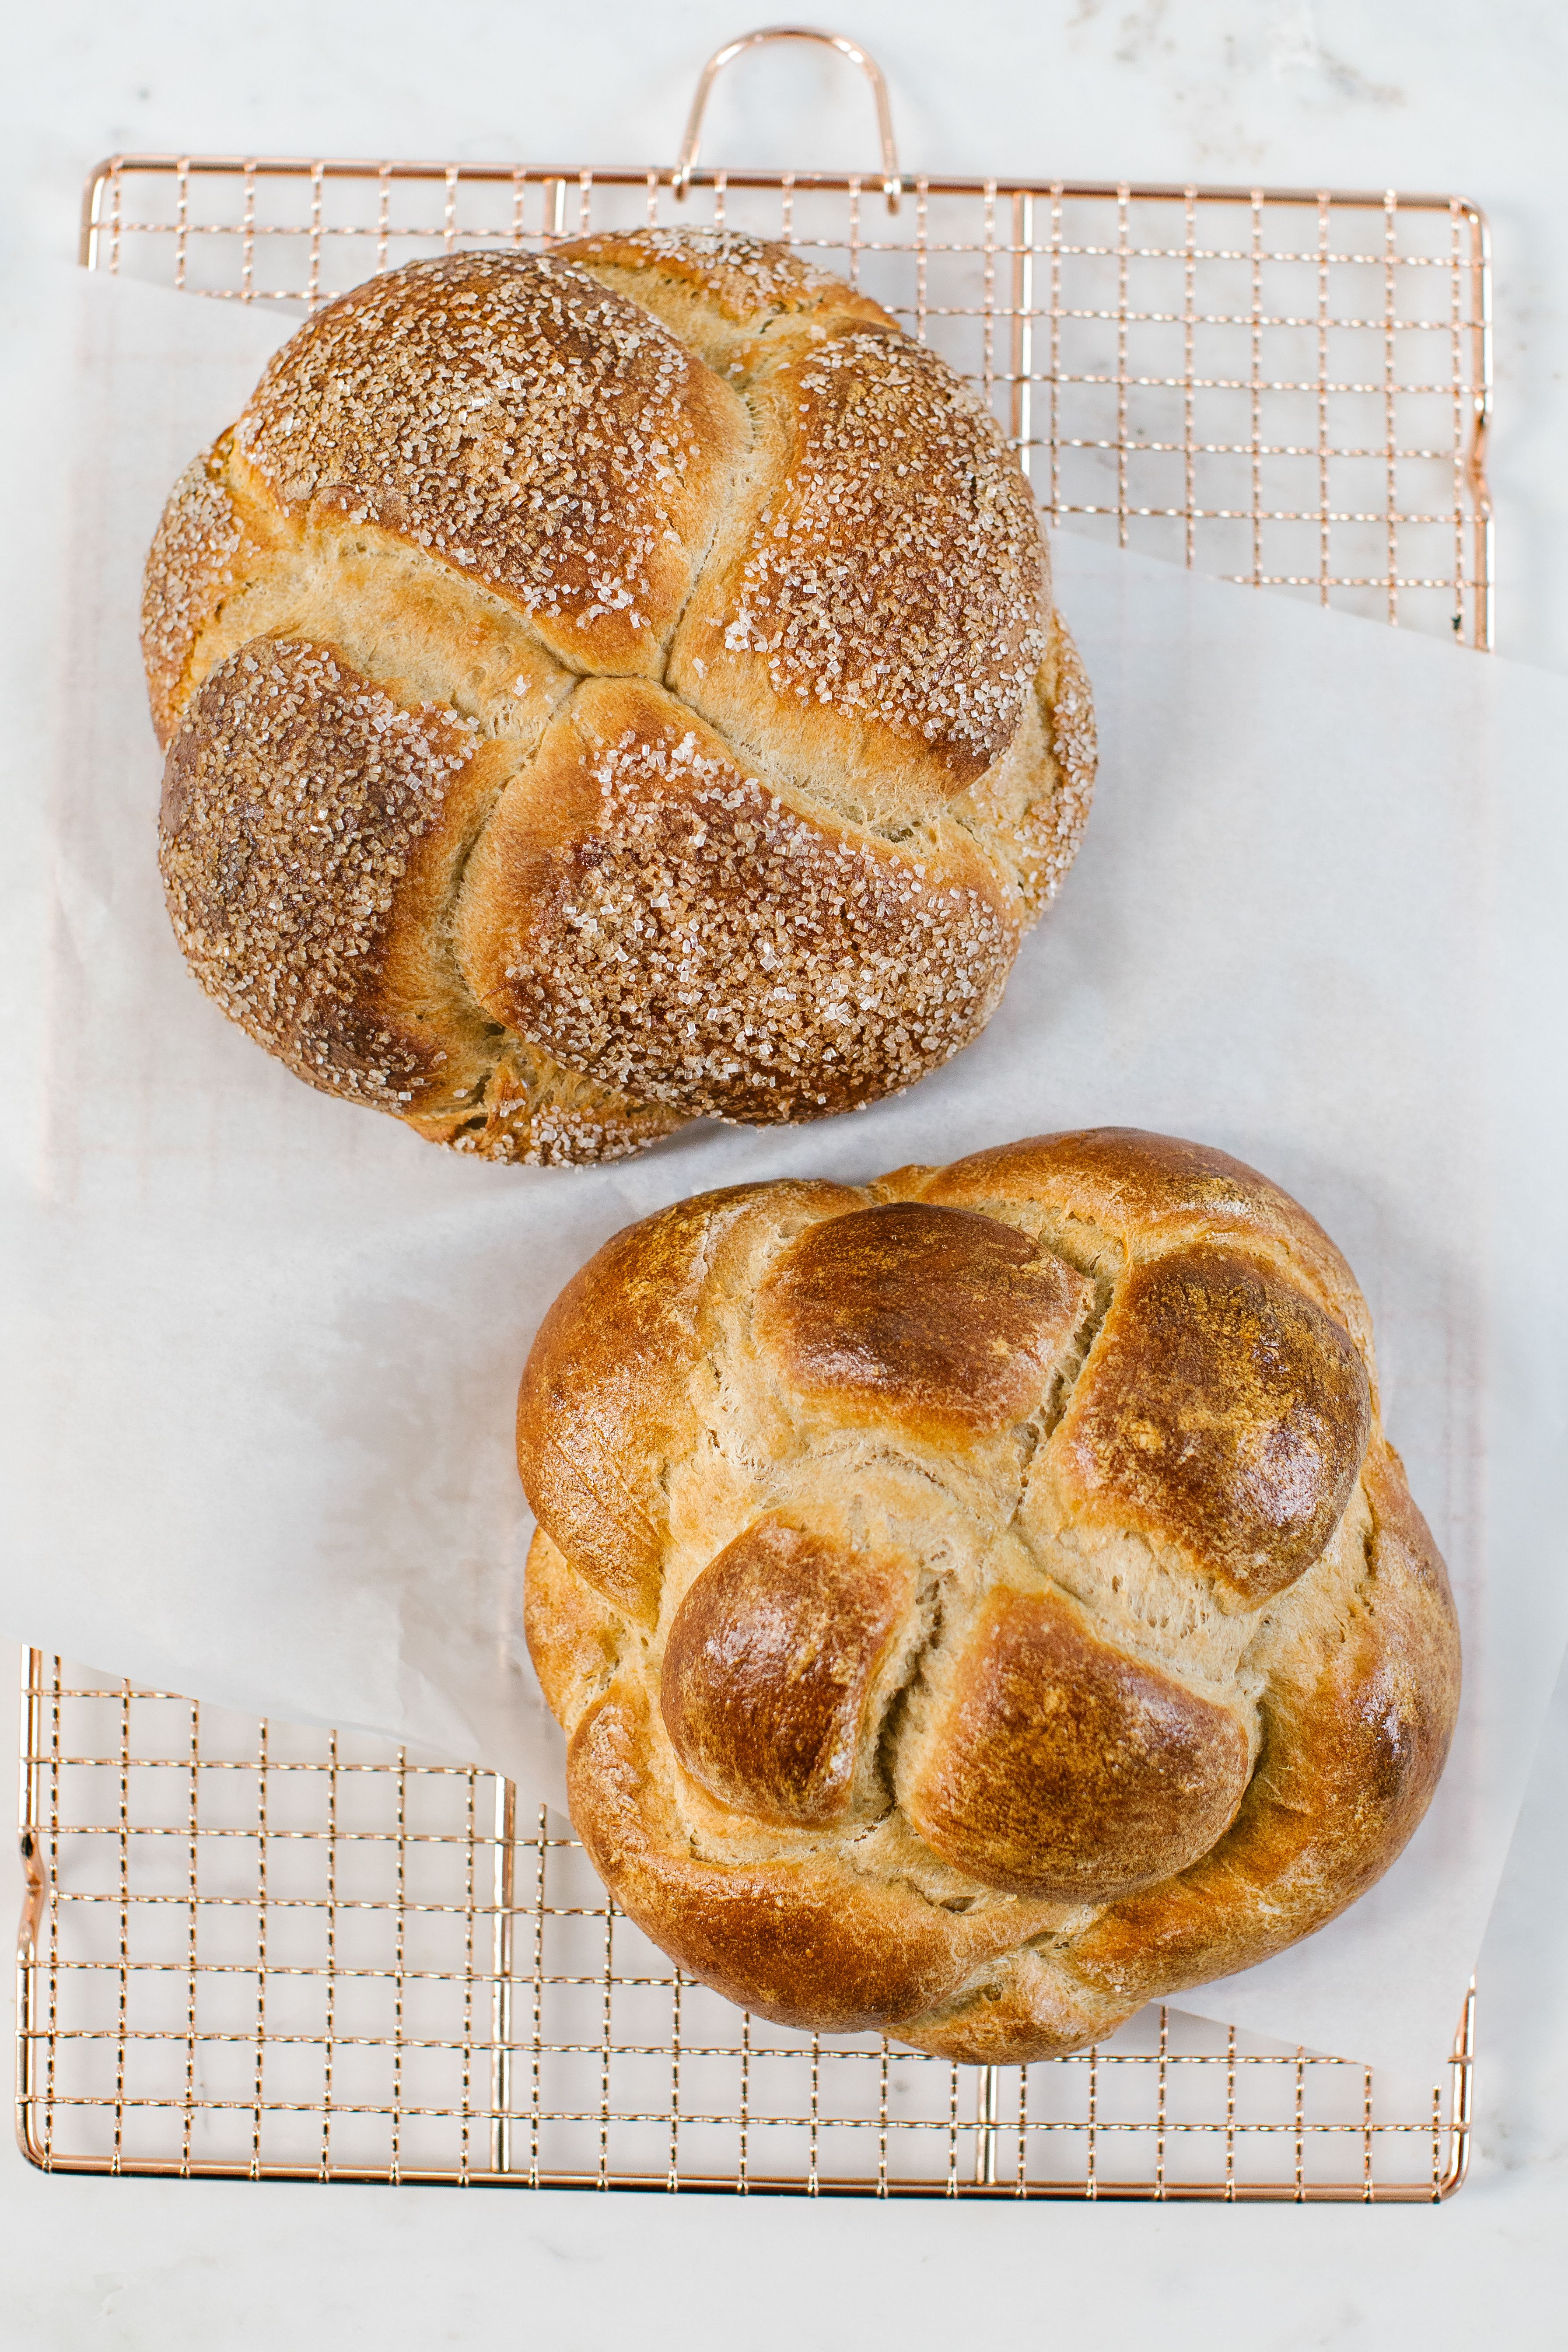 Four Strand Round Braided Challah